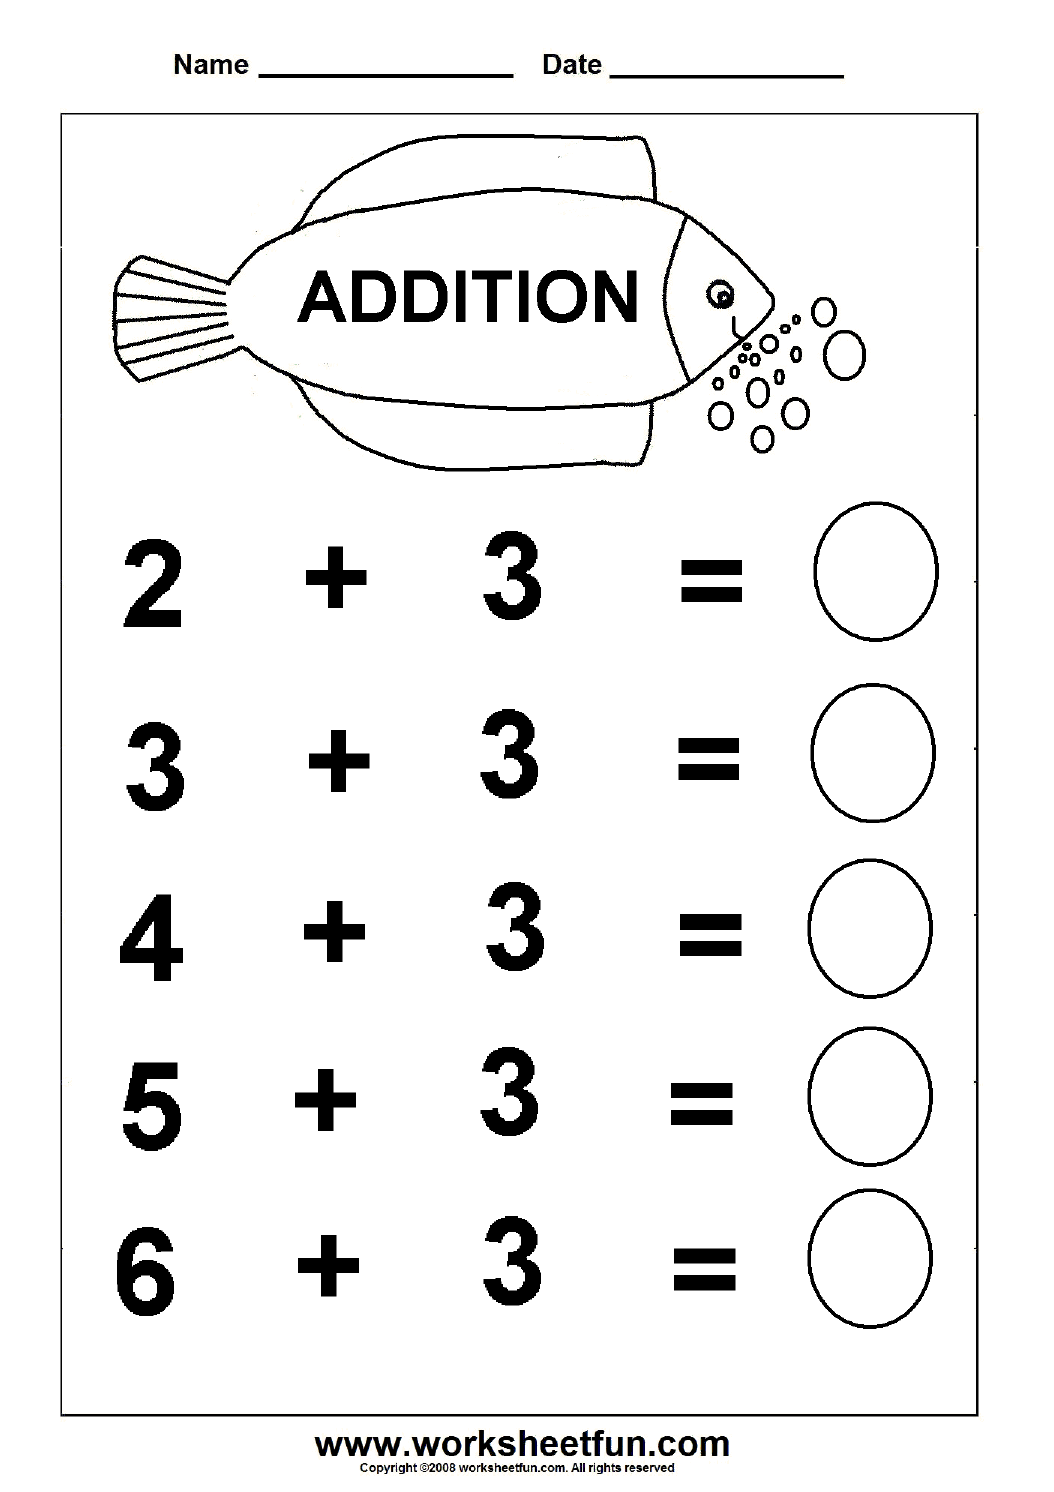 Worksheet Kindergarten Math Worksheets Addition And Subtraction addition basic facts free printable worksheets beginner 6 kindergarten worksheets